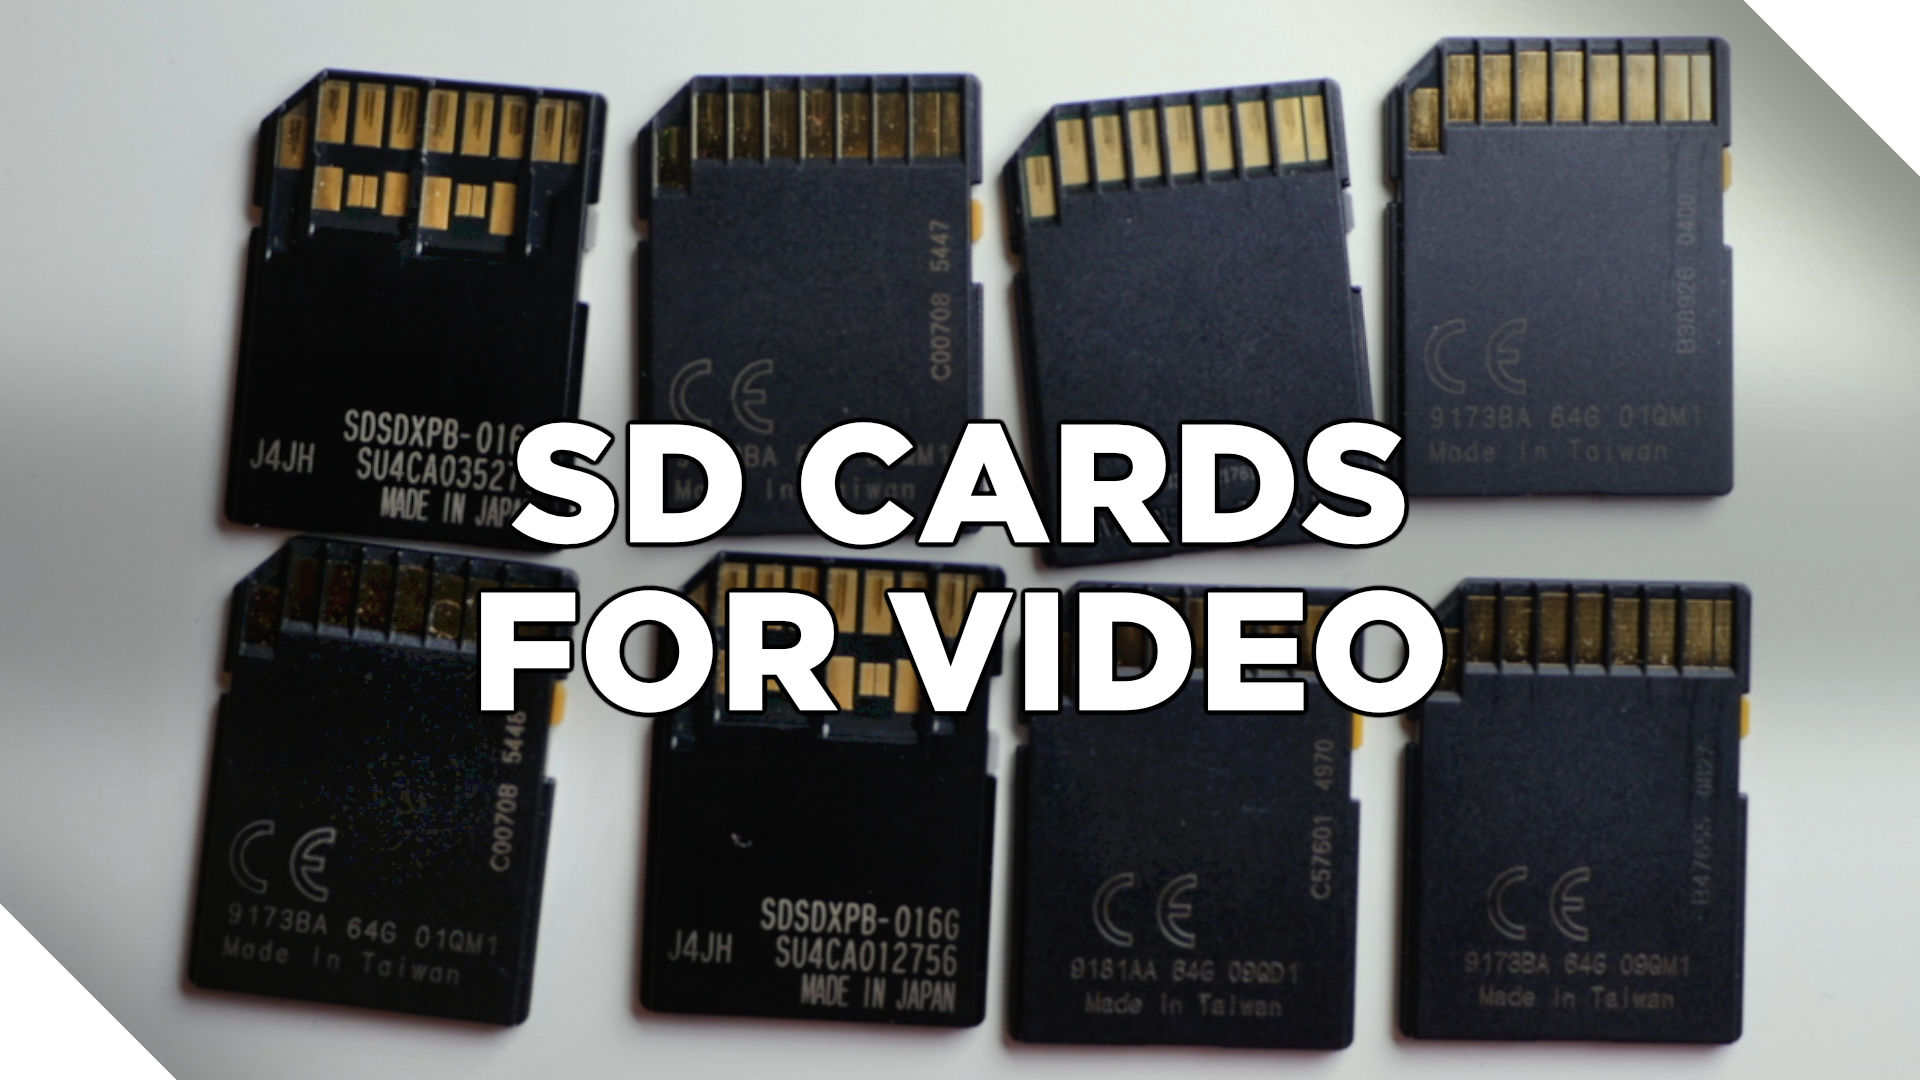 My Favorite SD Cards for Video